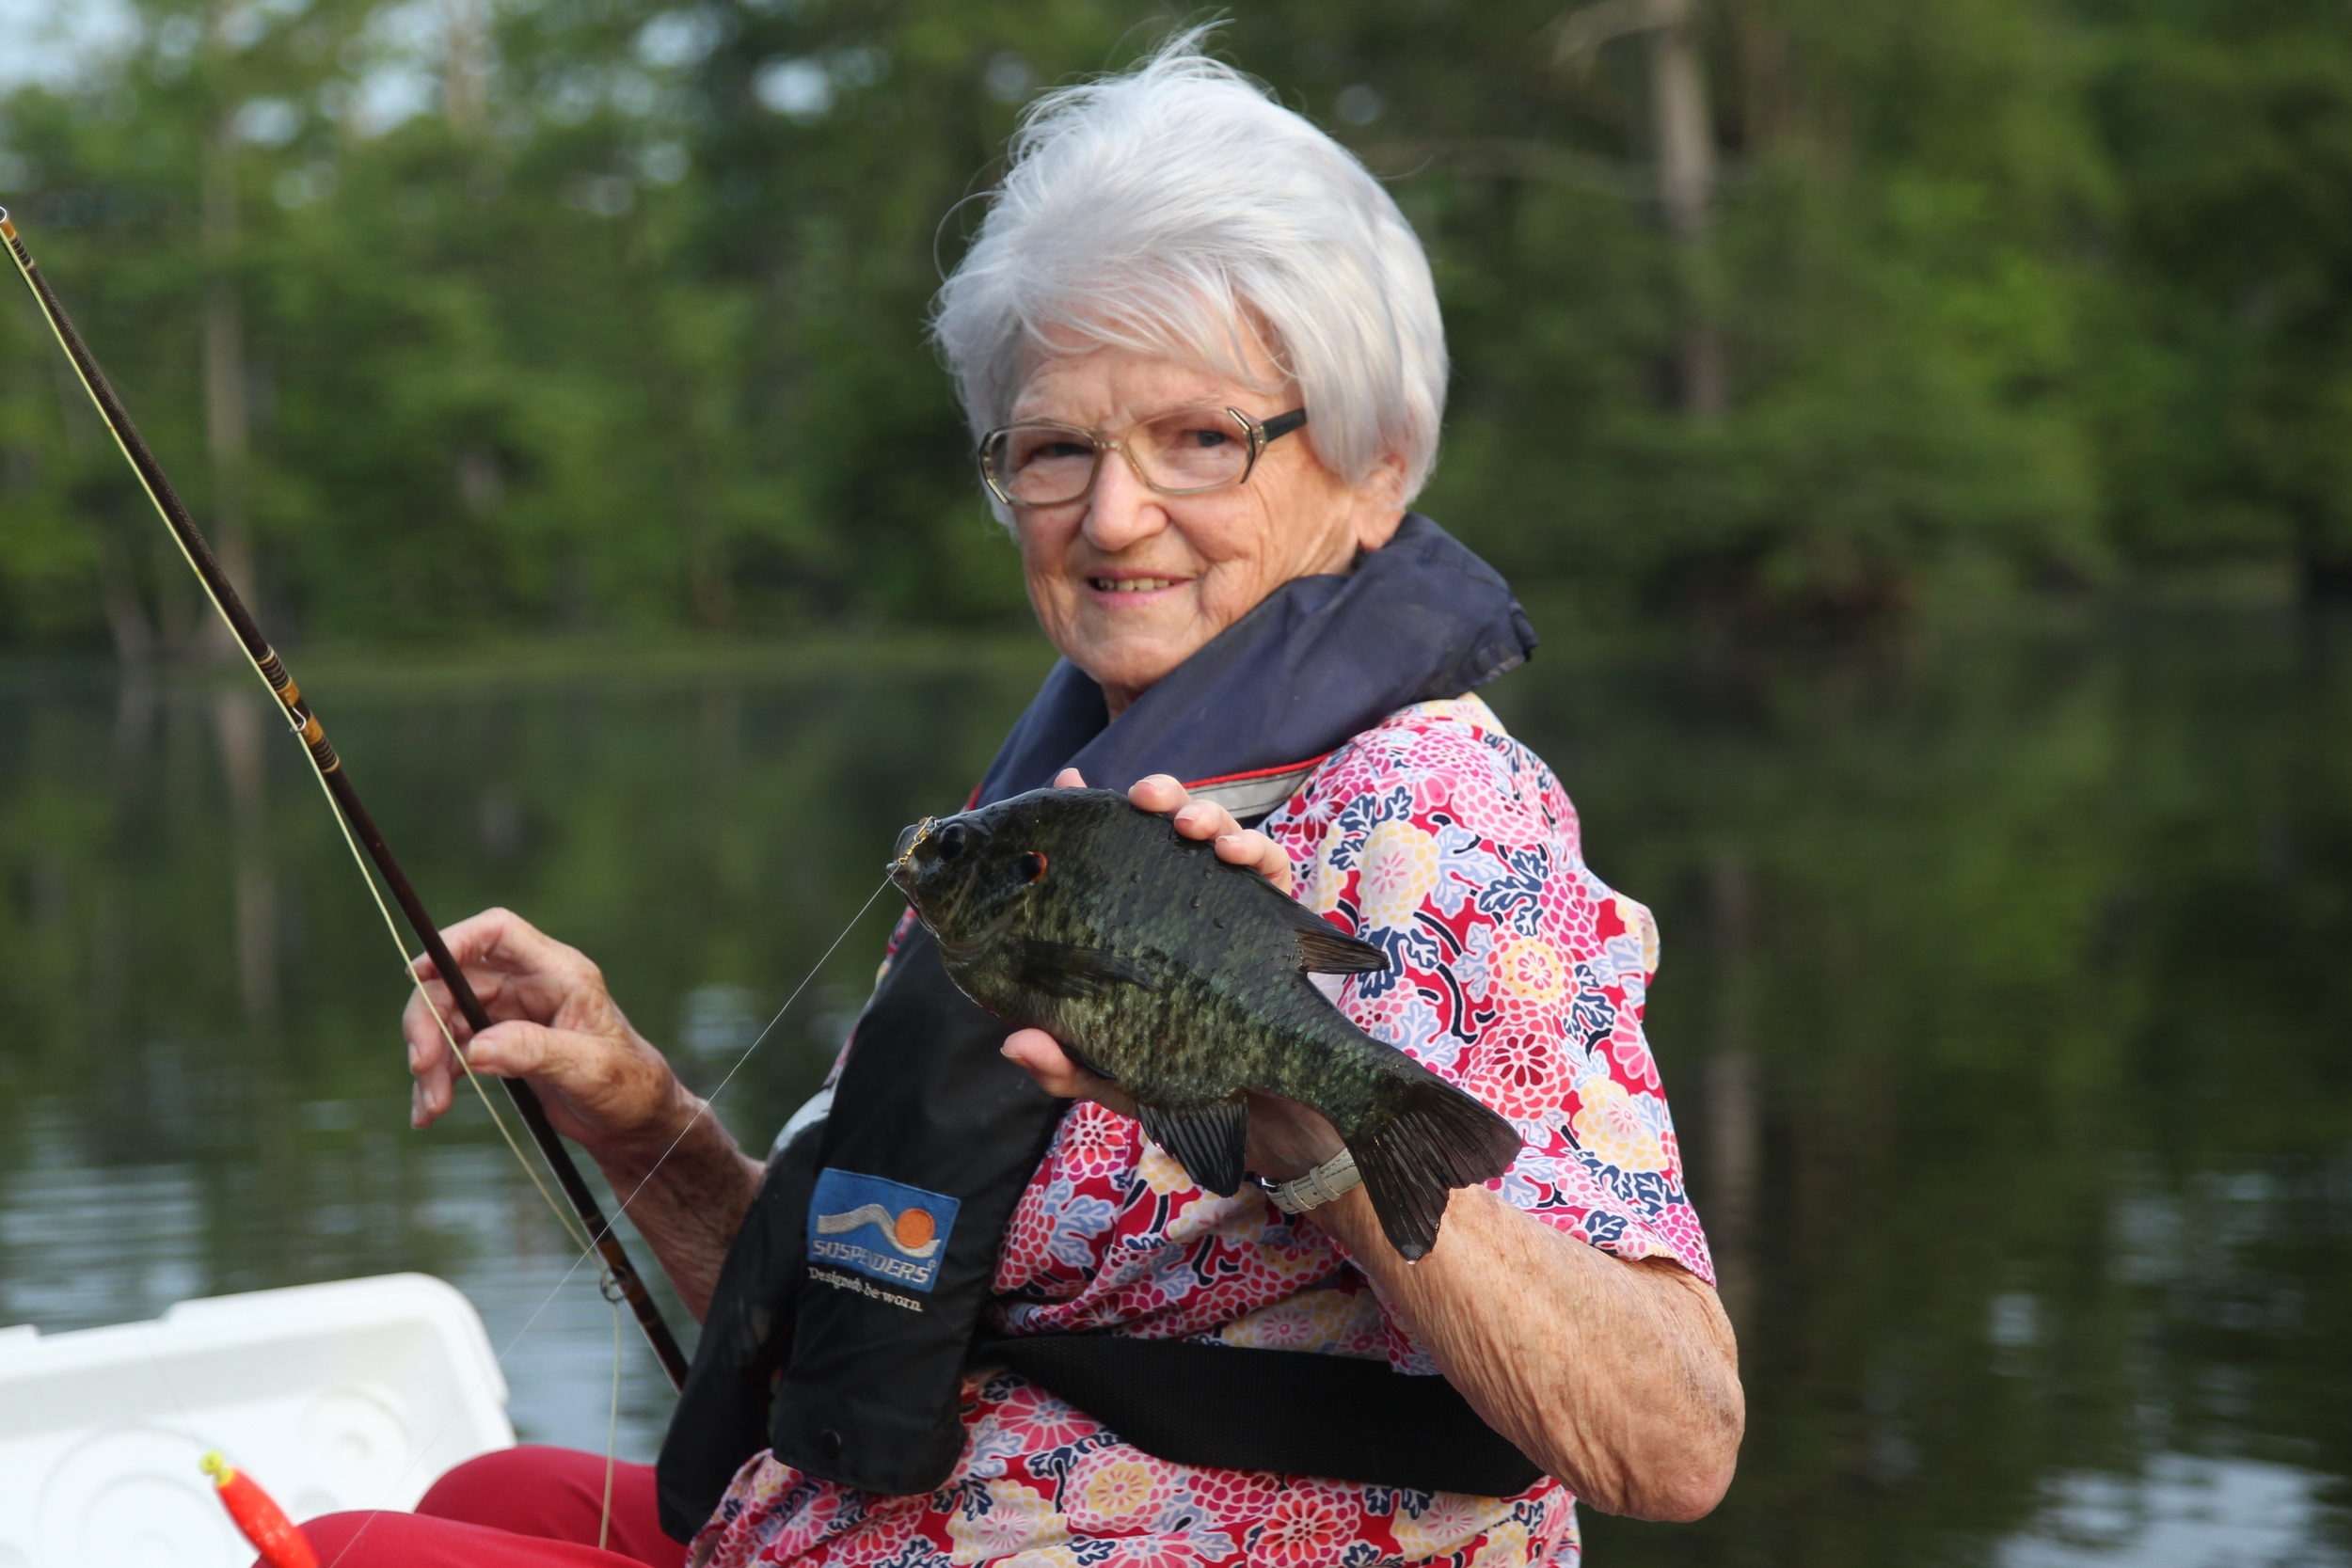 Bream fishing near Little Rock is a great way to enjoy the day.